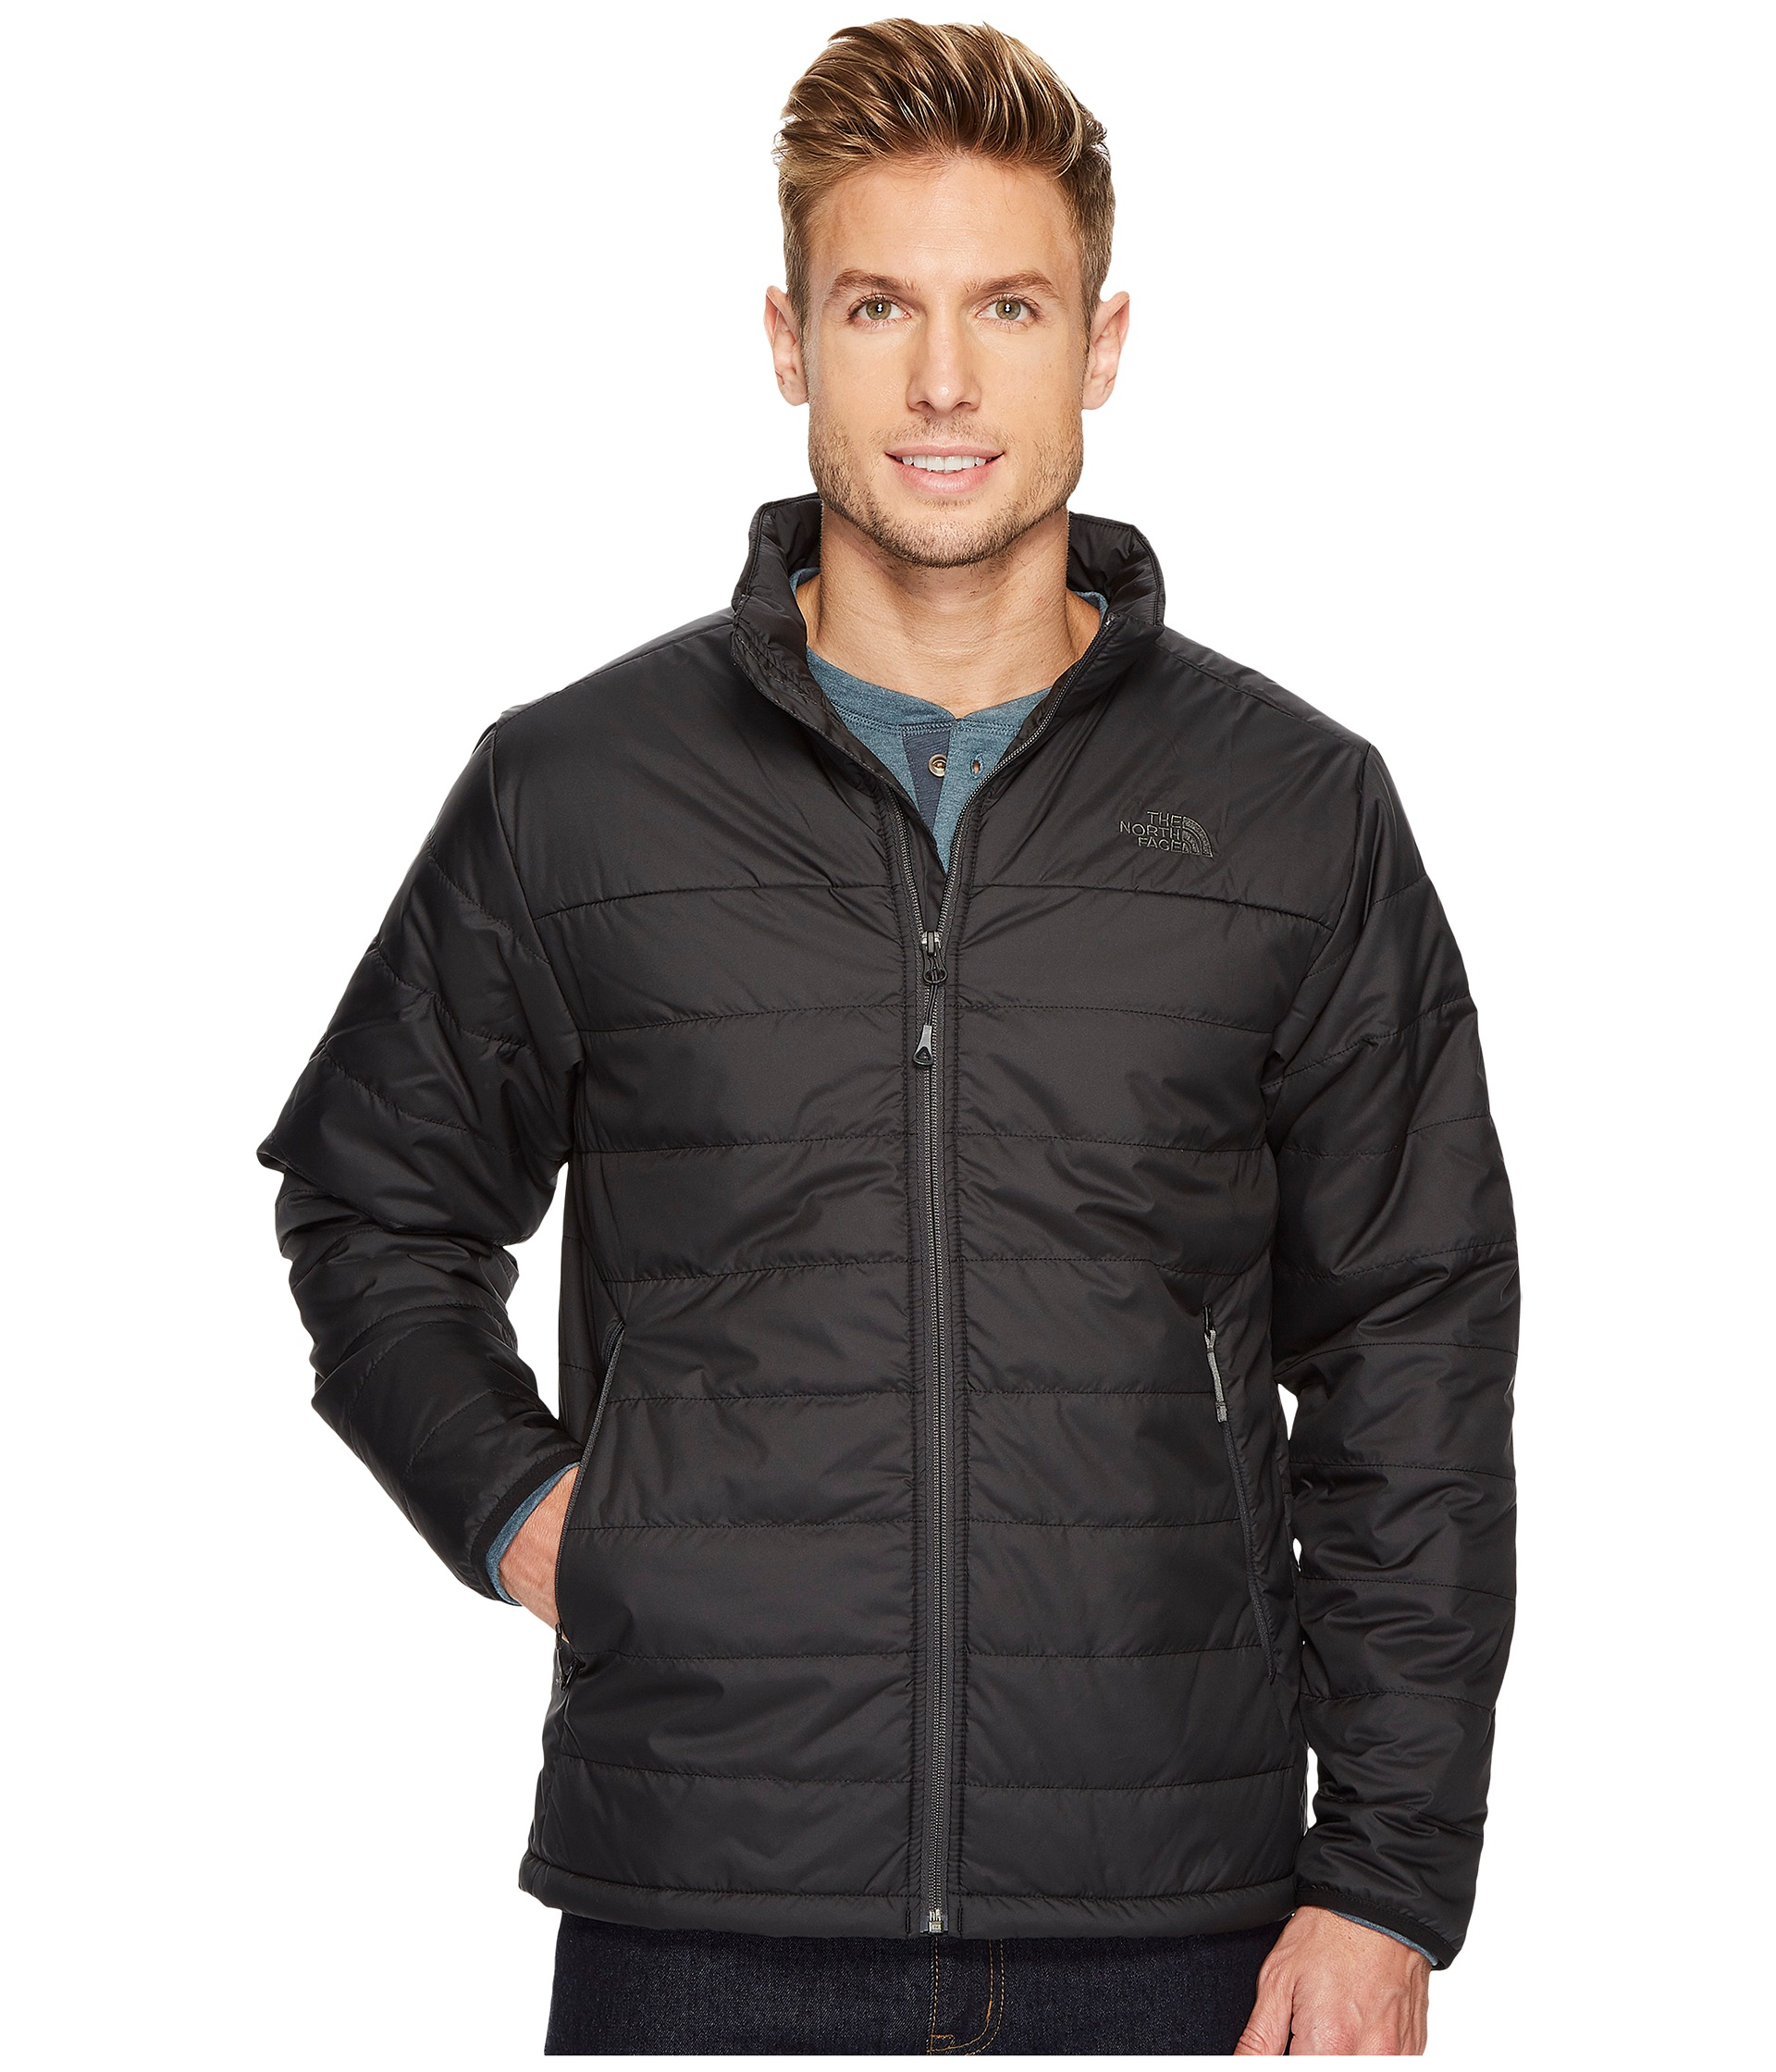 The North Face Bombay Jacket At Zappos Com